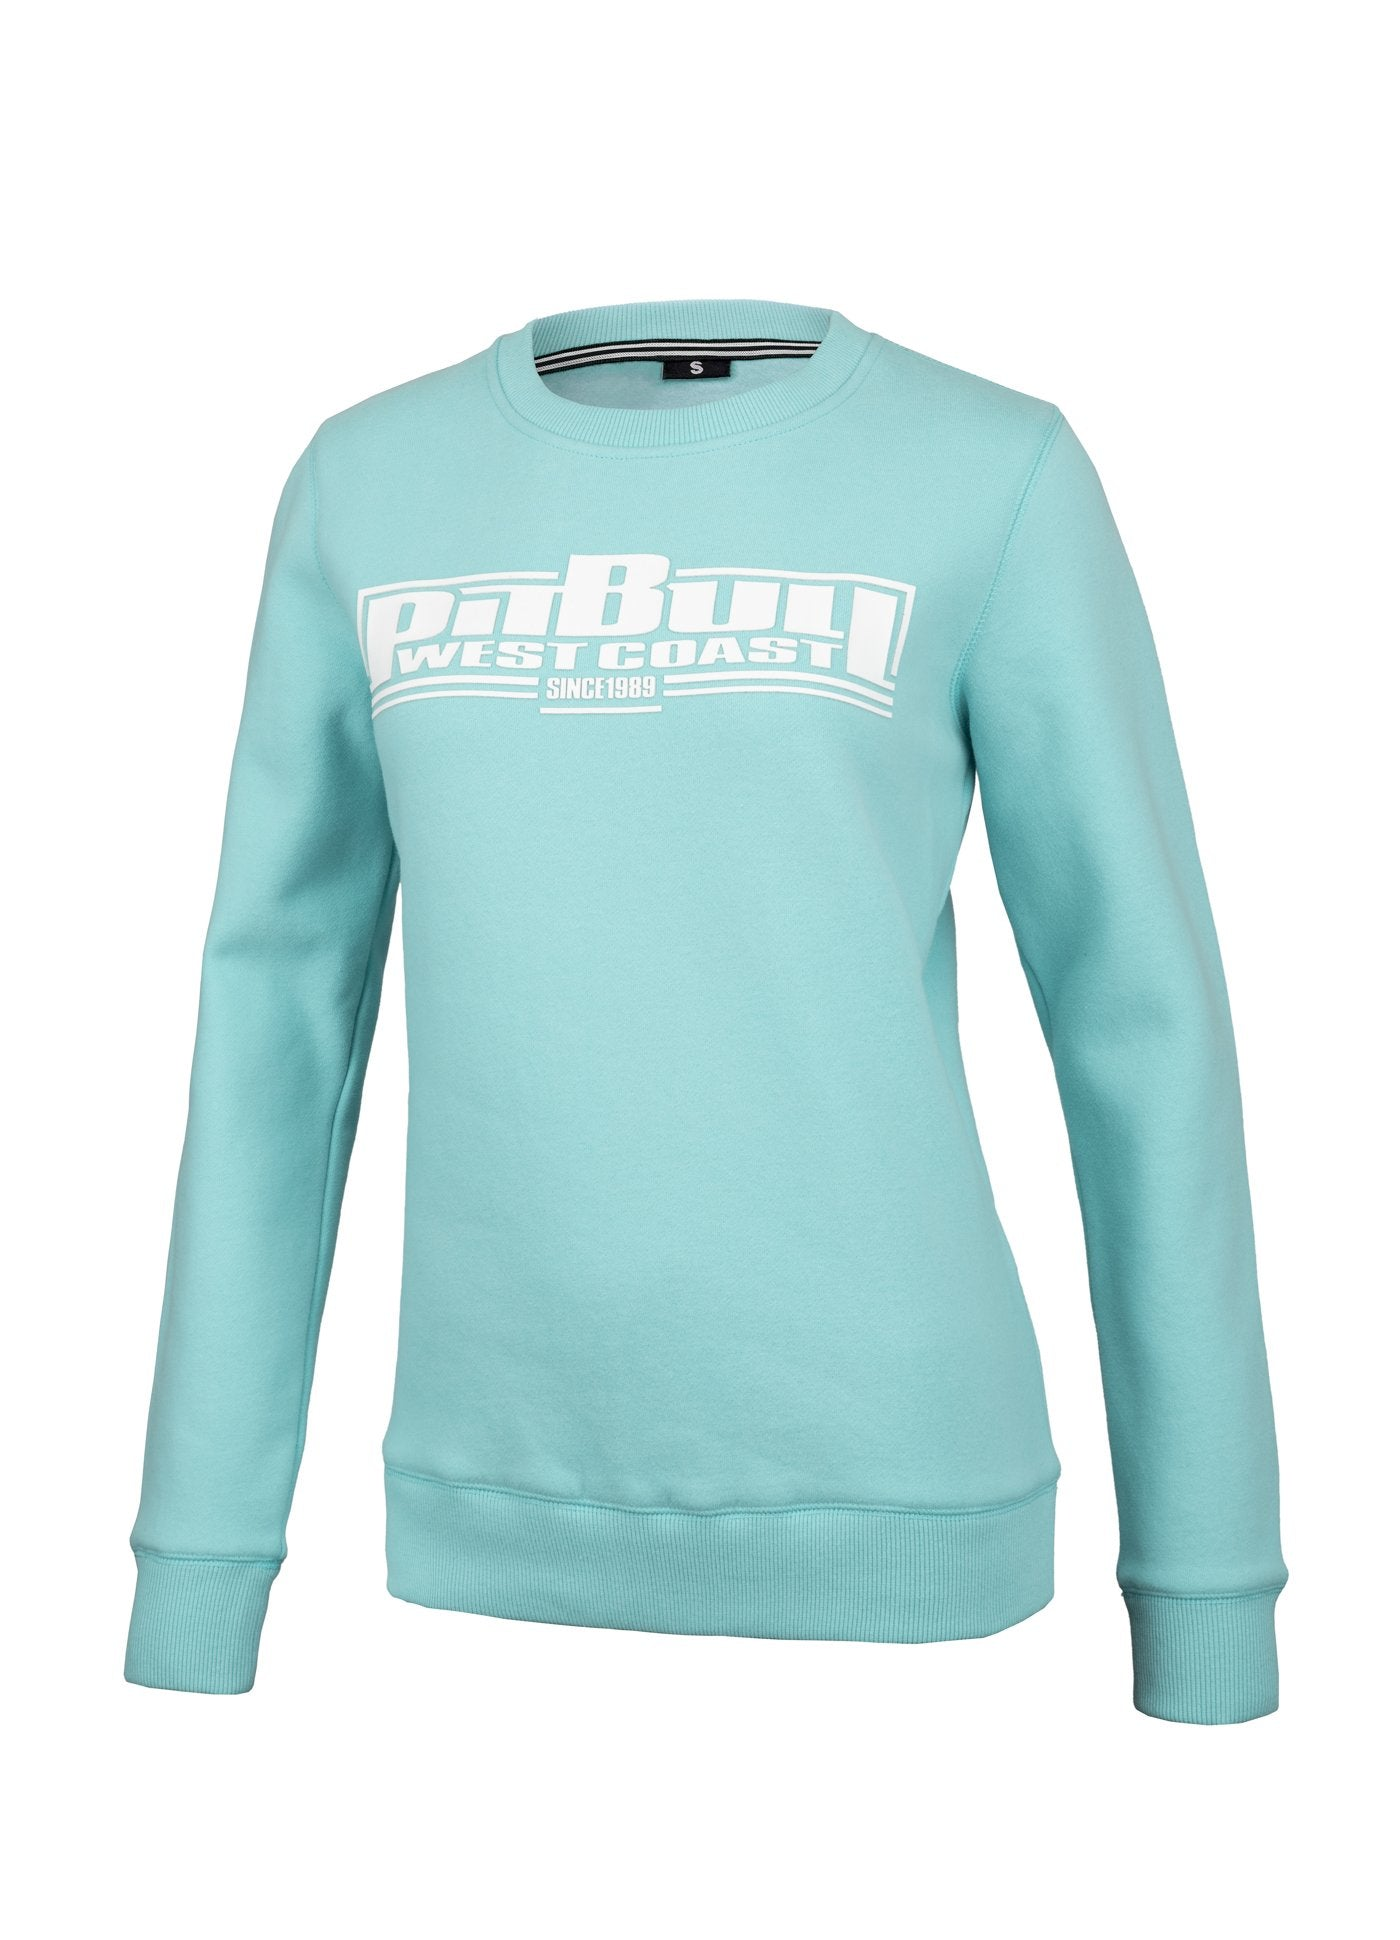 Women Crewneck BOXING Turquoise - Pitbull West Coast U.S.A.